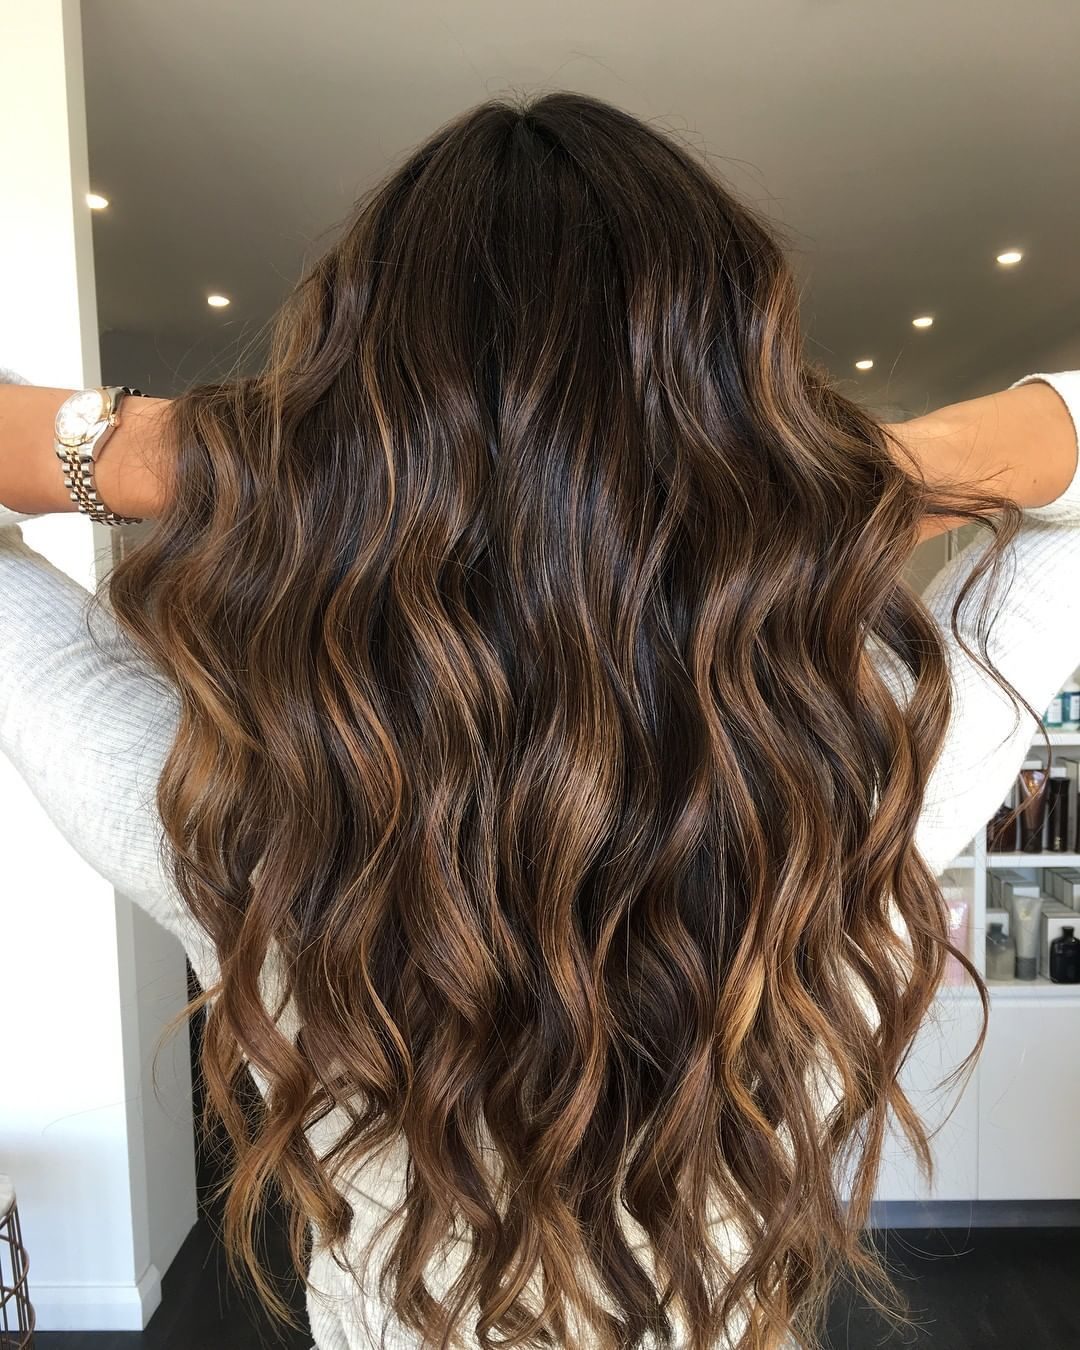 The 35 Summer Hair Color Ideas You Need For 2020 | Hair.com